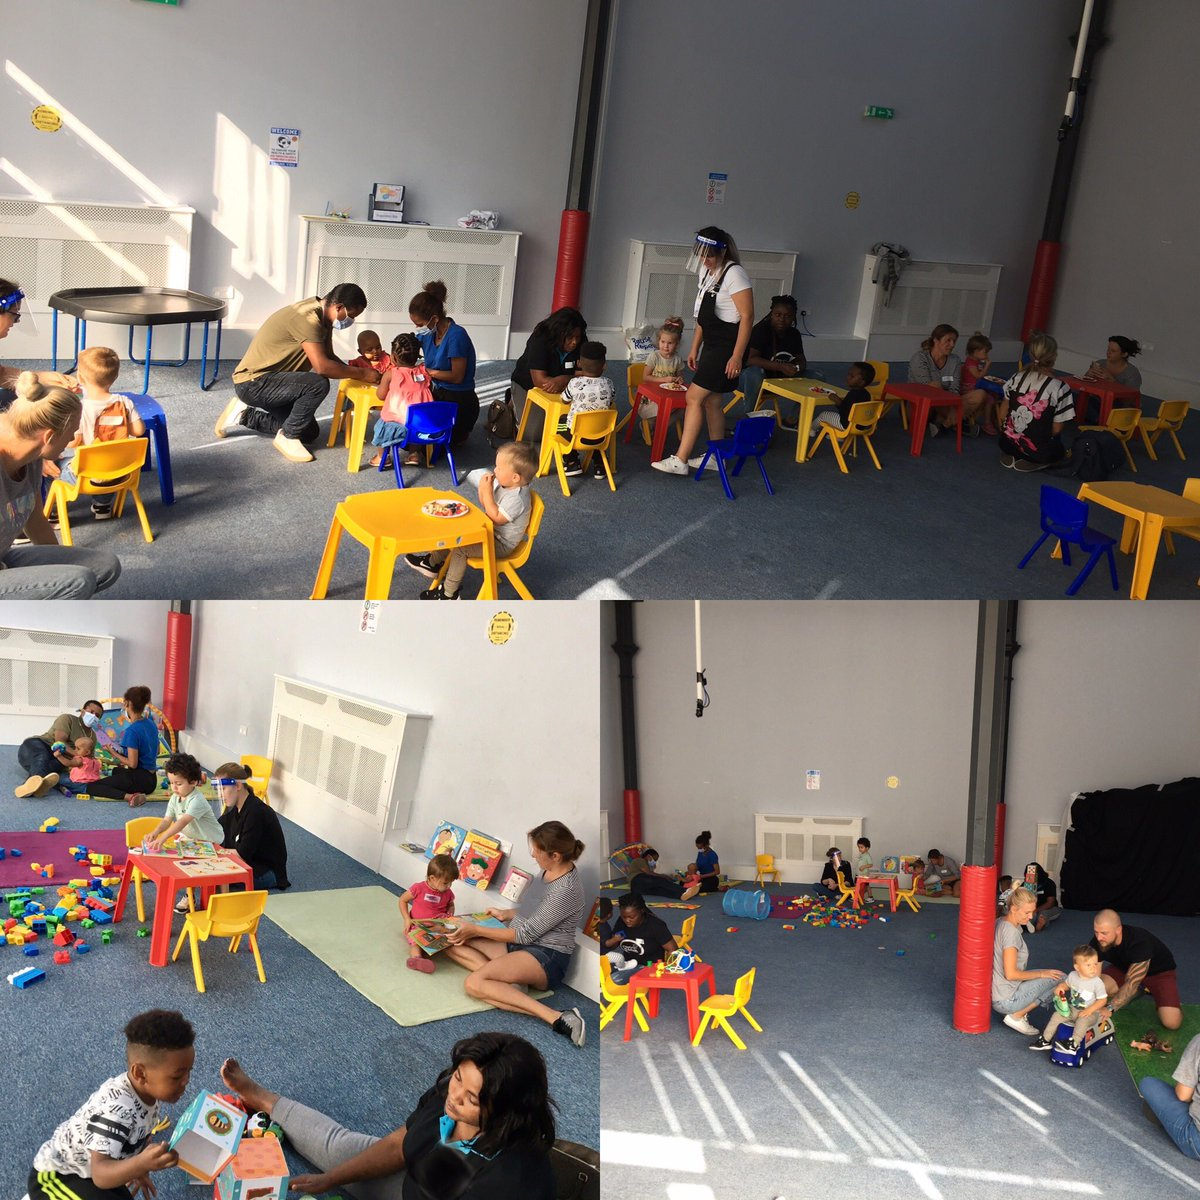 So excited to have ran our tots stay and play session today, first one since lockdown. We are getting used to a new venue and new measures. A smooth, safe and fun session was had by all. Thank you to our volunteers! 😊🌈🐻🦋 @TNLComFund #stayandplay #under5s #enactcommunity https://t.co/MNhwZVKQxm